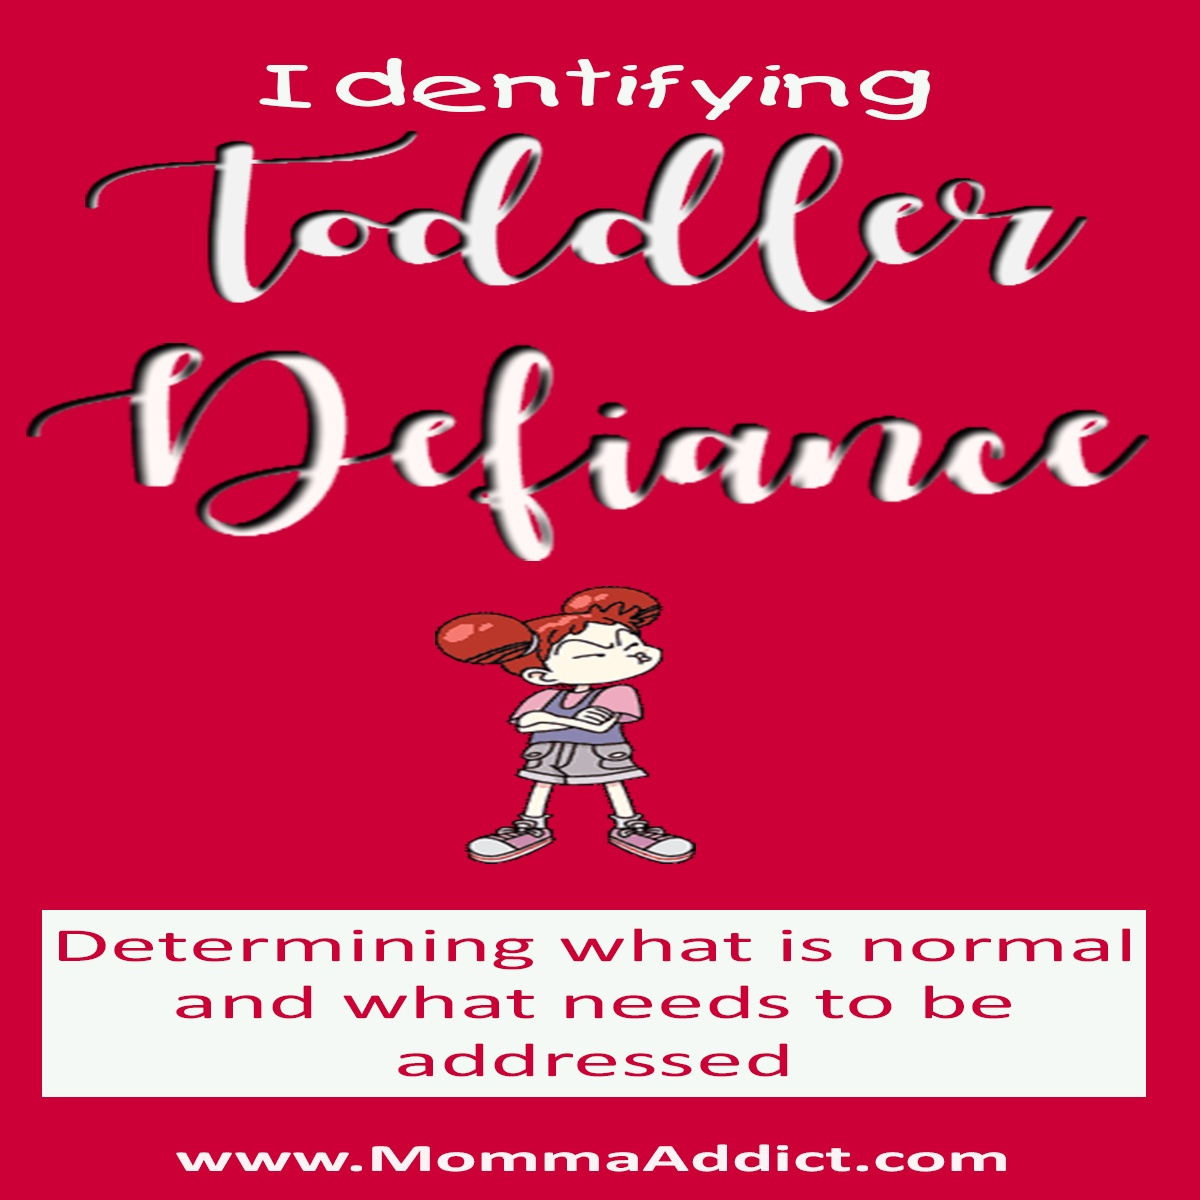 Dr. Momma discusses the need to determine if a toddler's behavior is normal or defiant